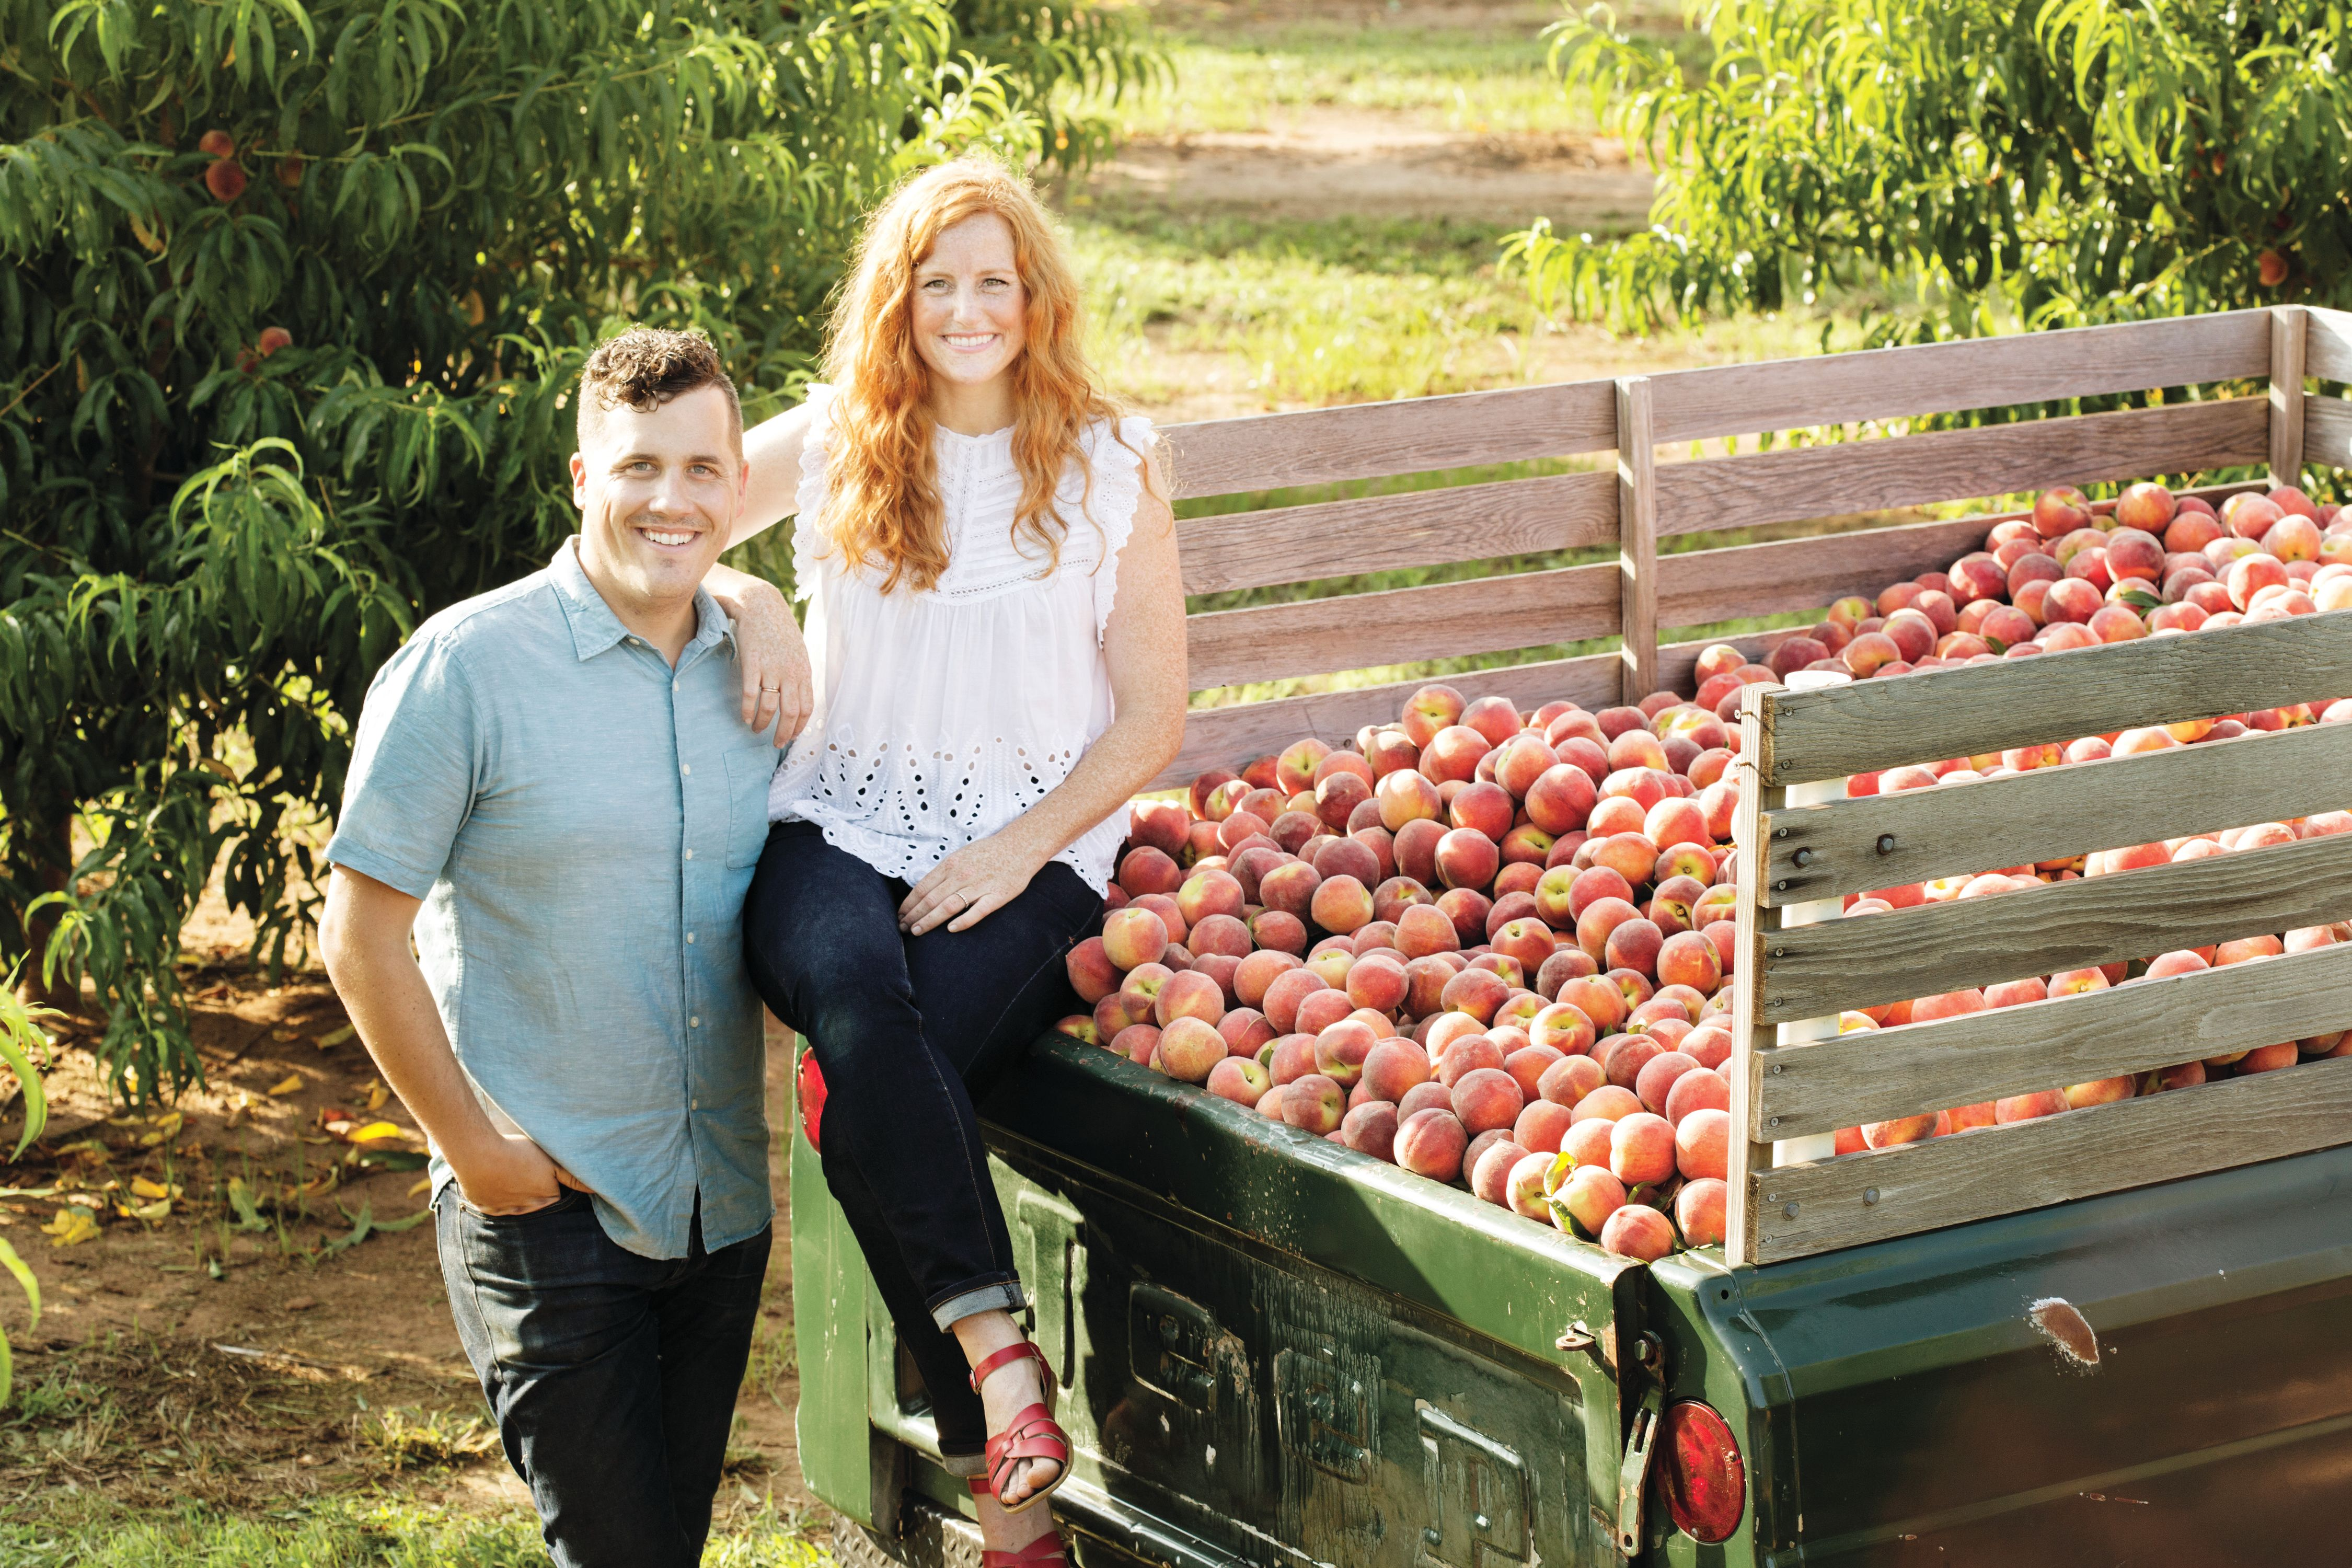 The Peach Truck Tour Is Bringing the Best Georgia Peaches All Around the Country